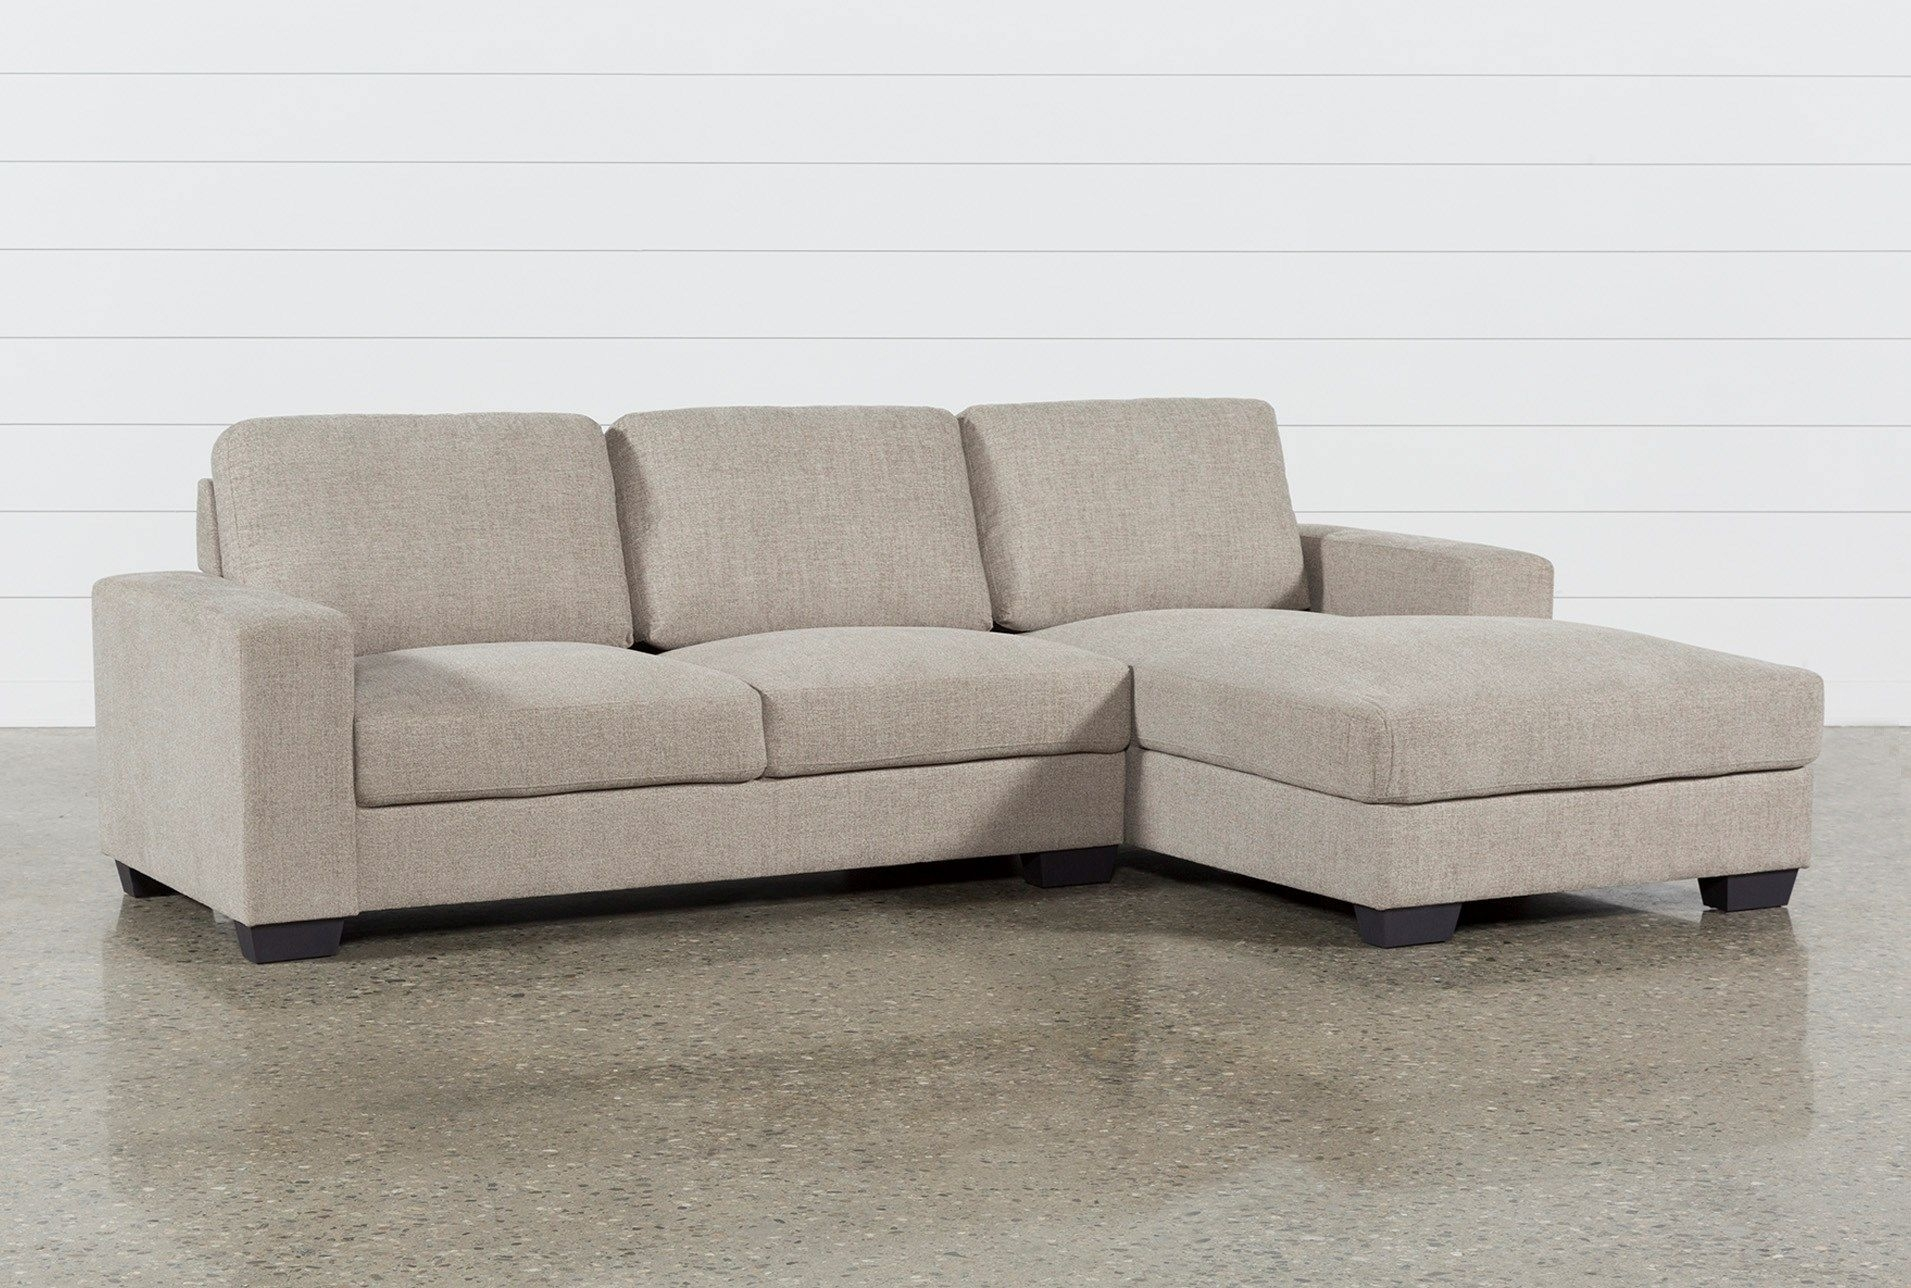 Jobs Oat 2 Piece Sectional With Right Facing Chaise In 2018 with regard to Arrowmask 2 Piece Sectionals With Raf Chaise (Image 13 of 30)